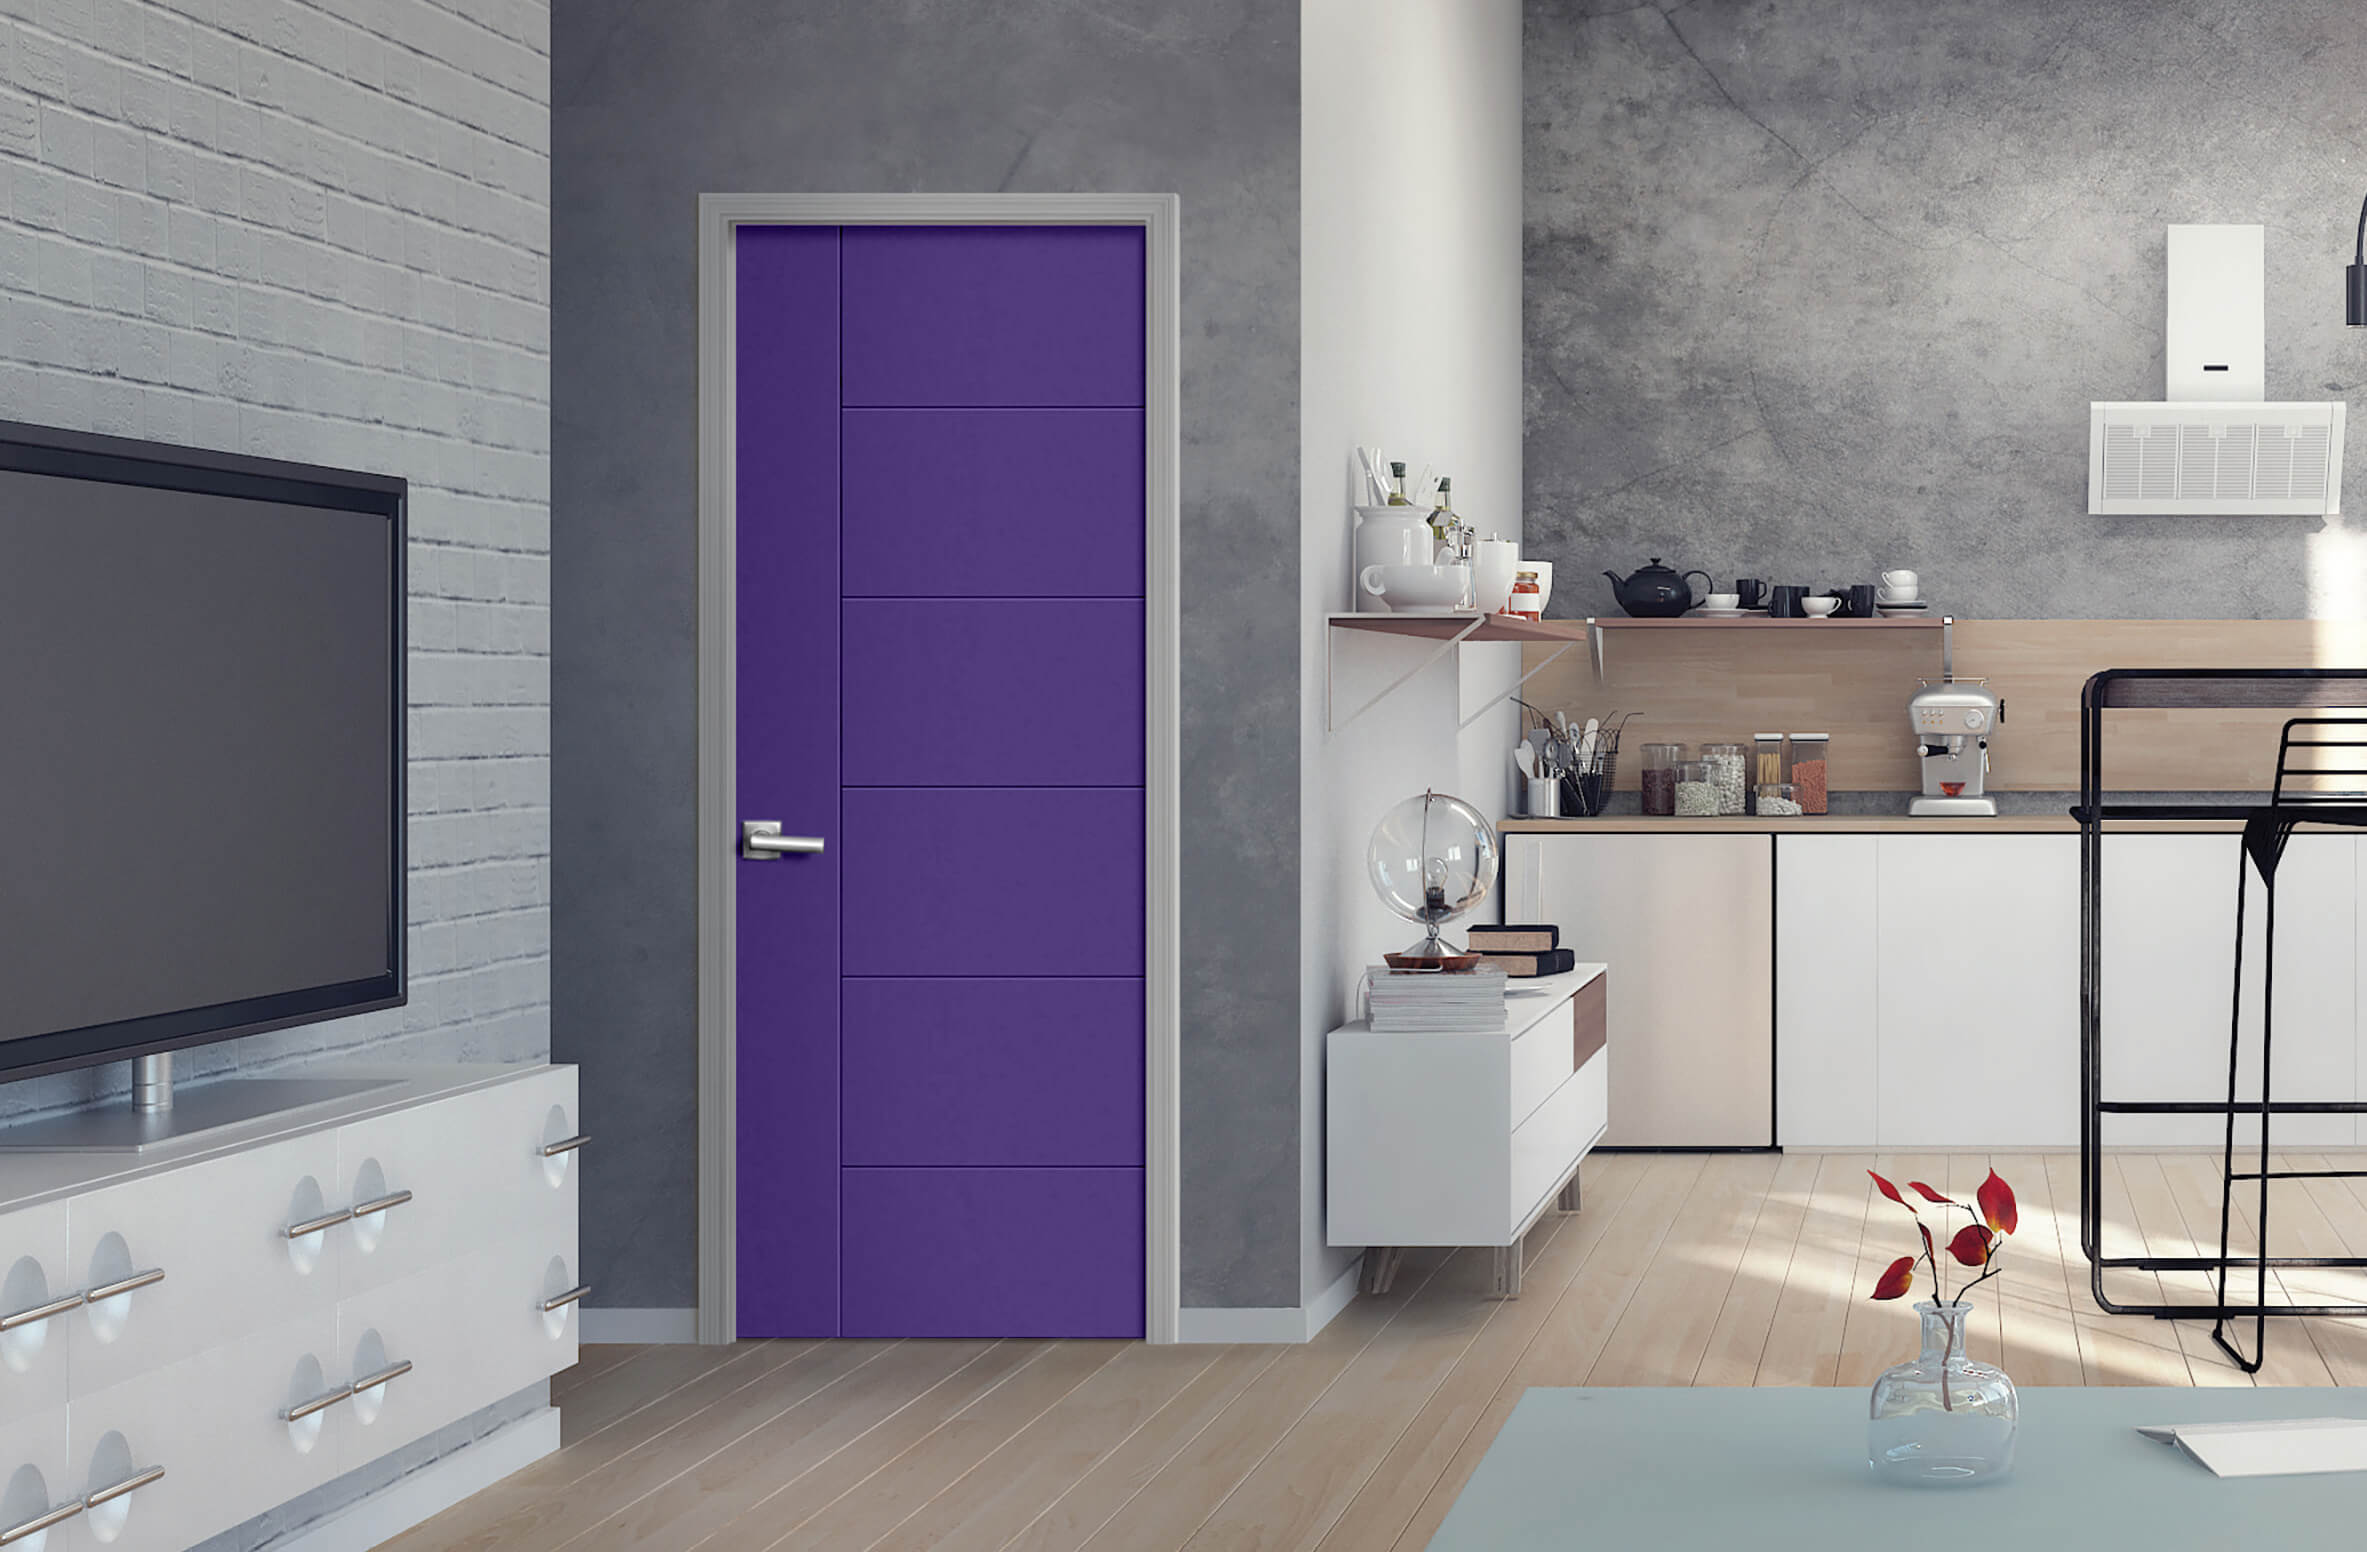 Photo of Masonite modern purple door